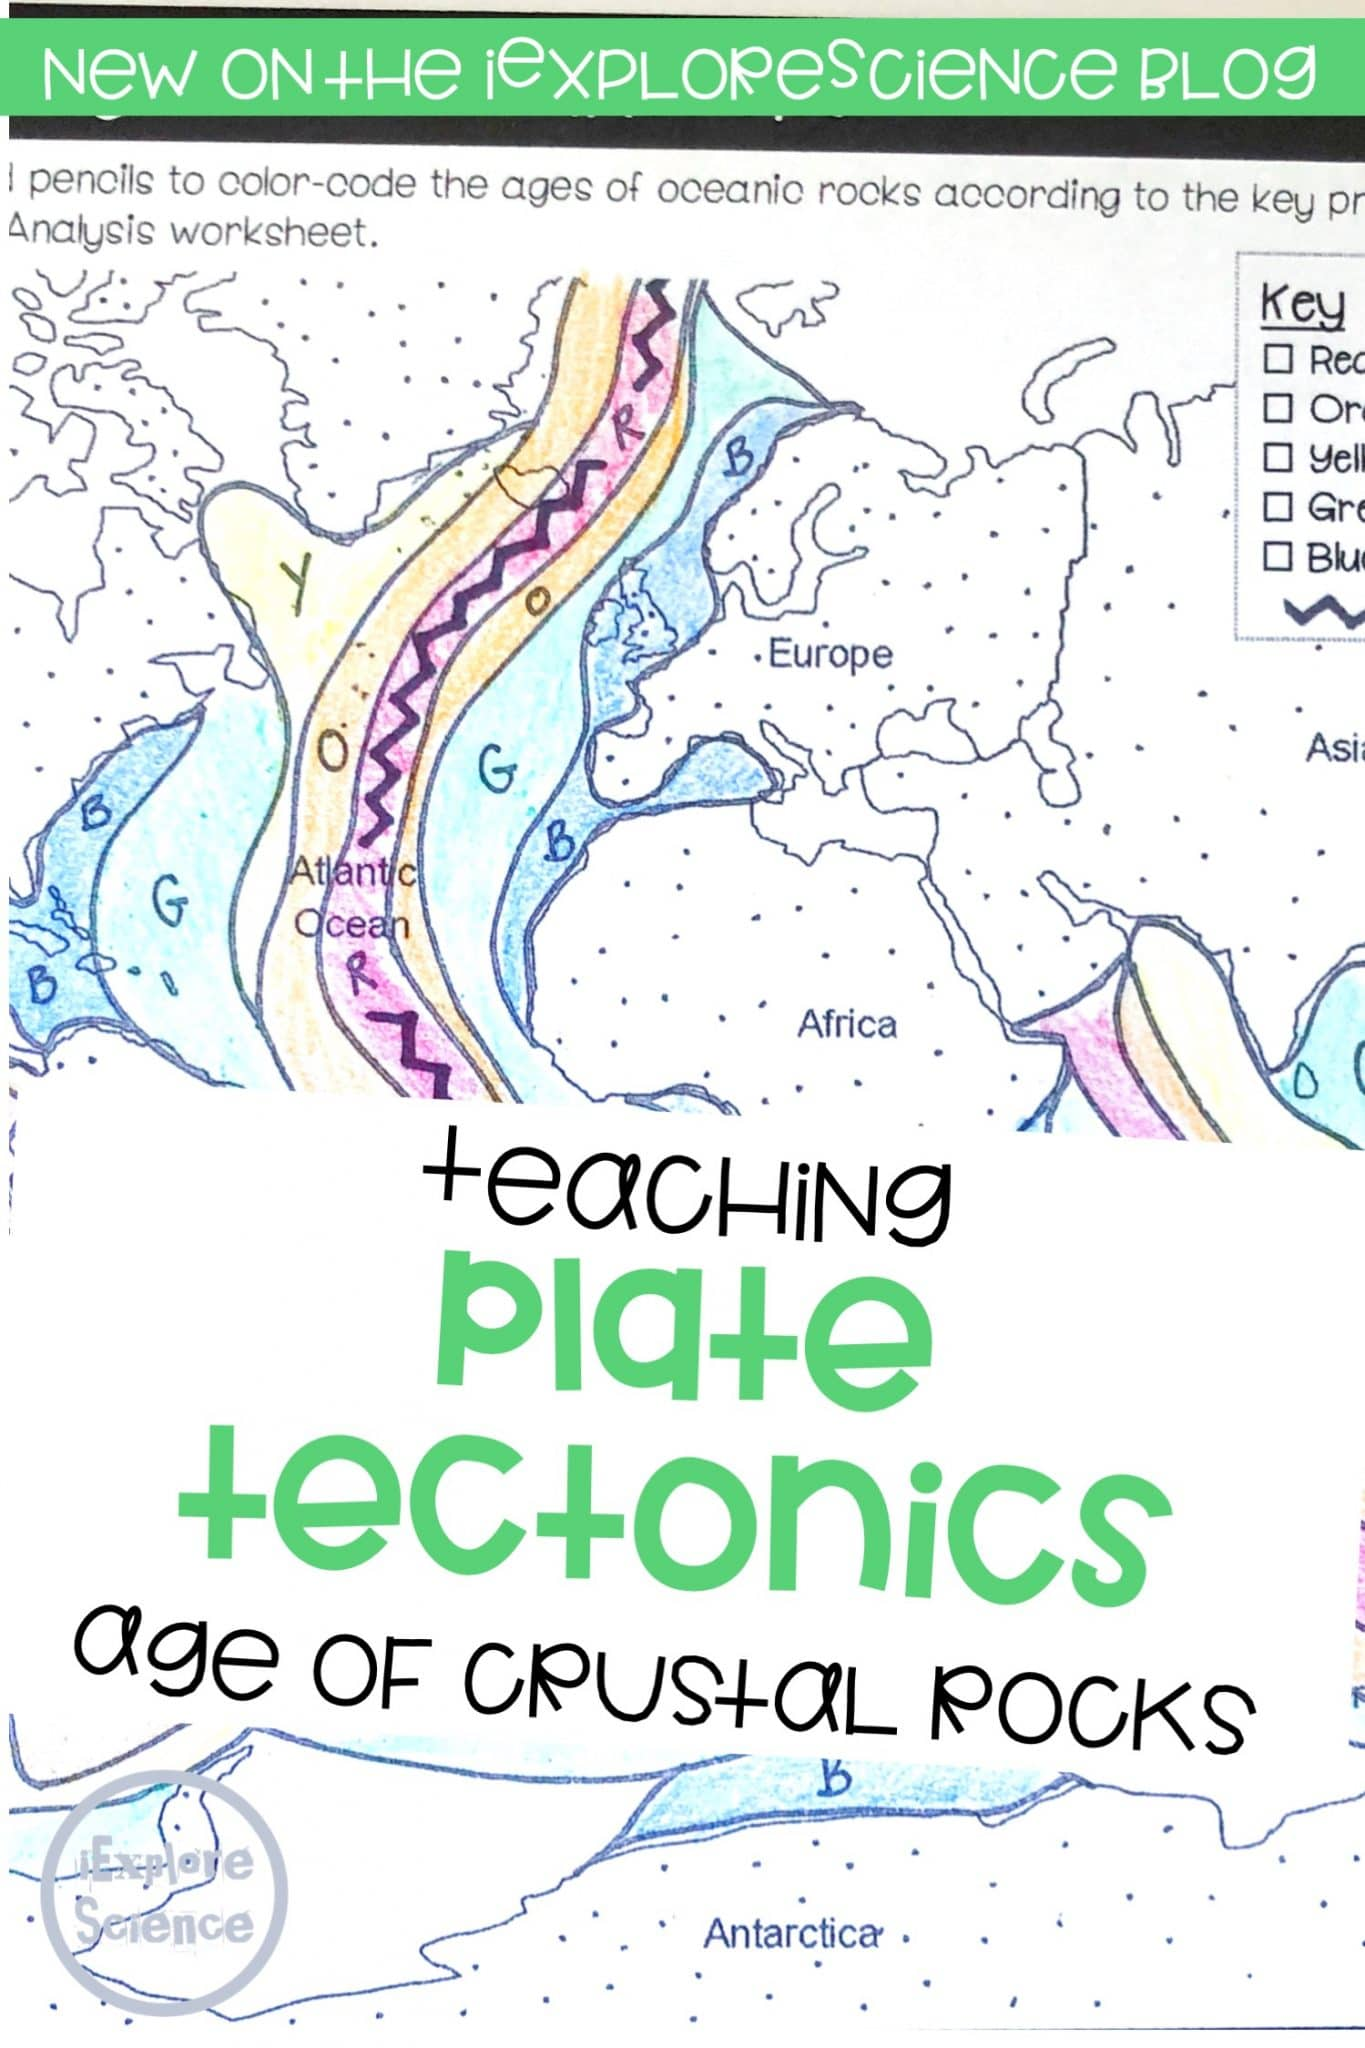 plate tectonics age of rocks